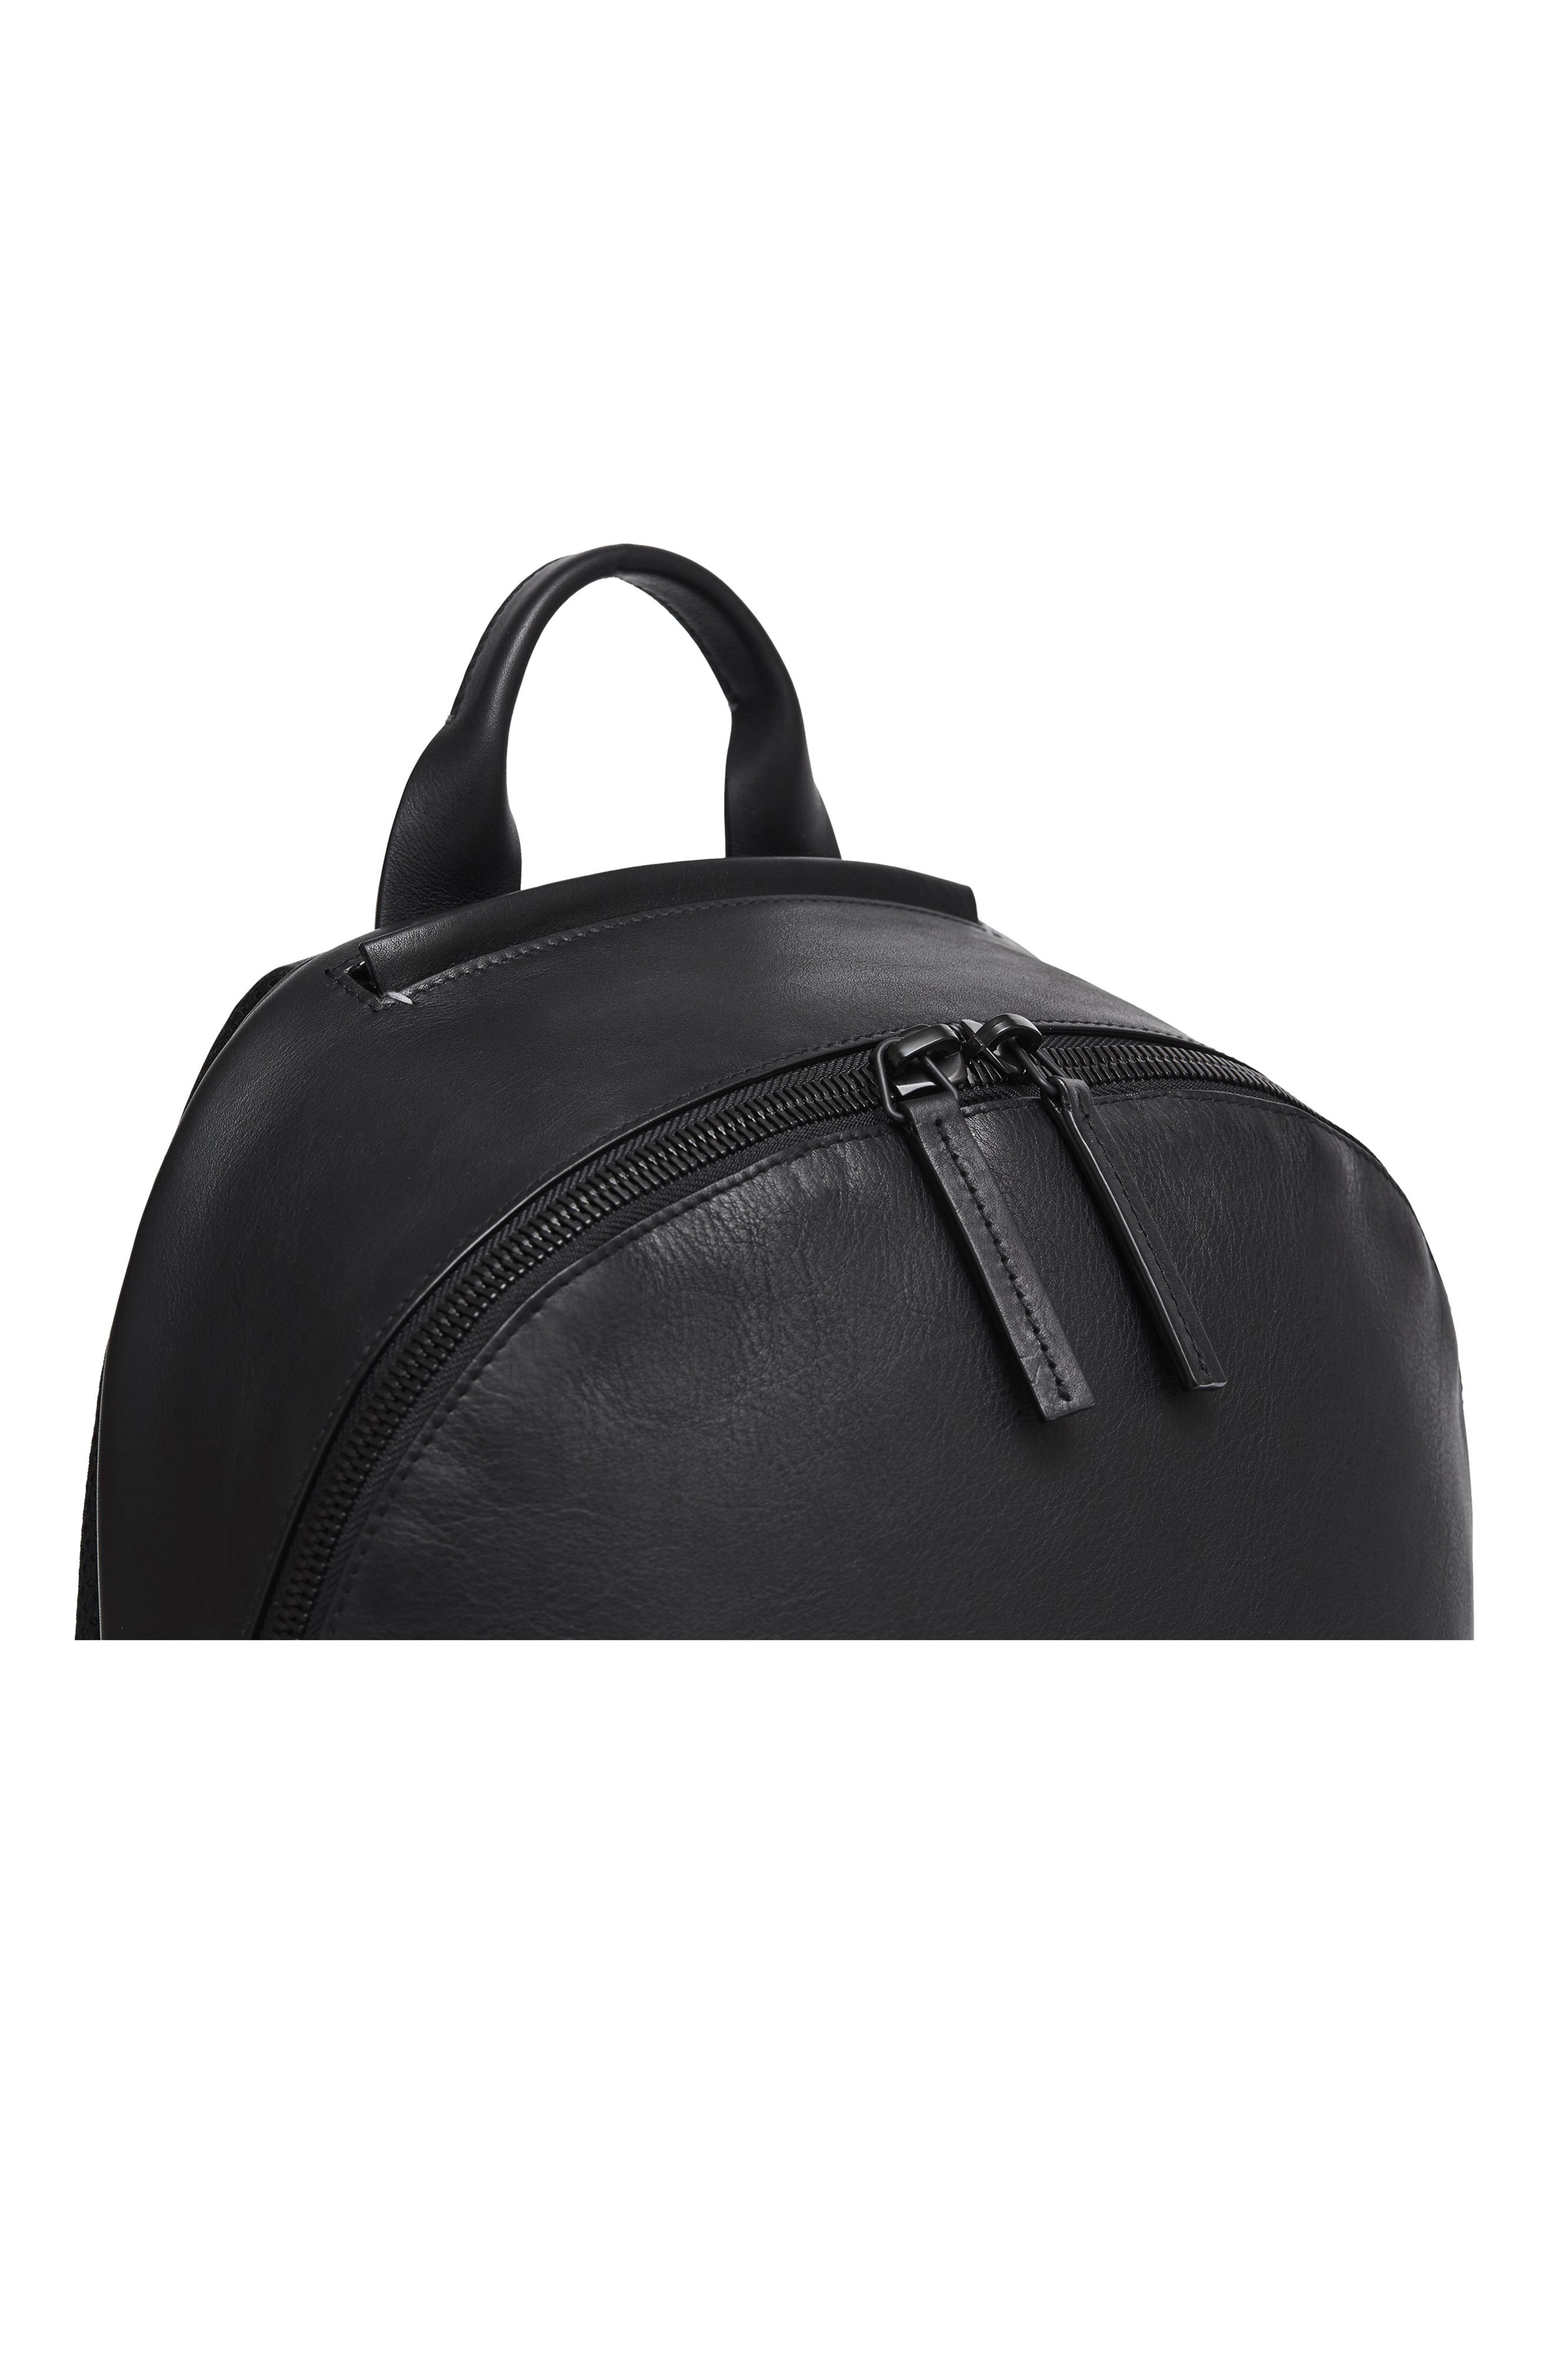 Leather Backpack,                             Alternate thumbnail 10, color,                             BLACK LEATHER